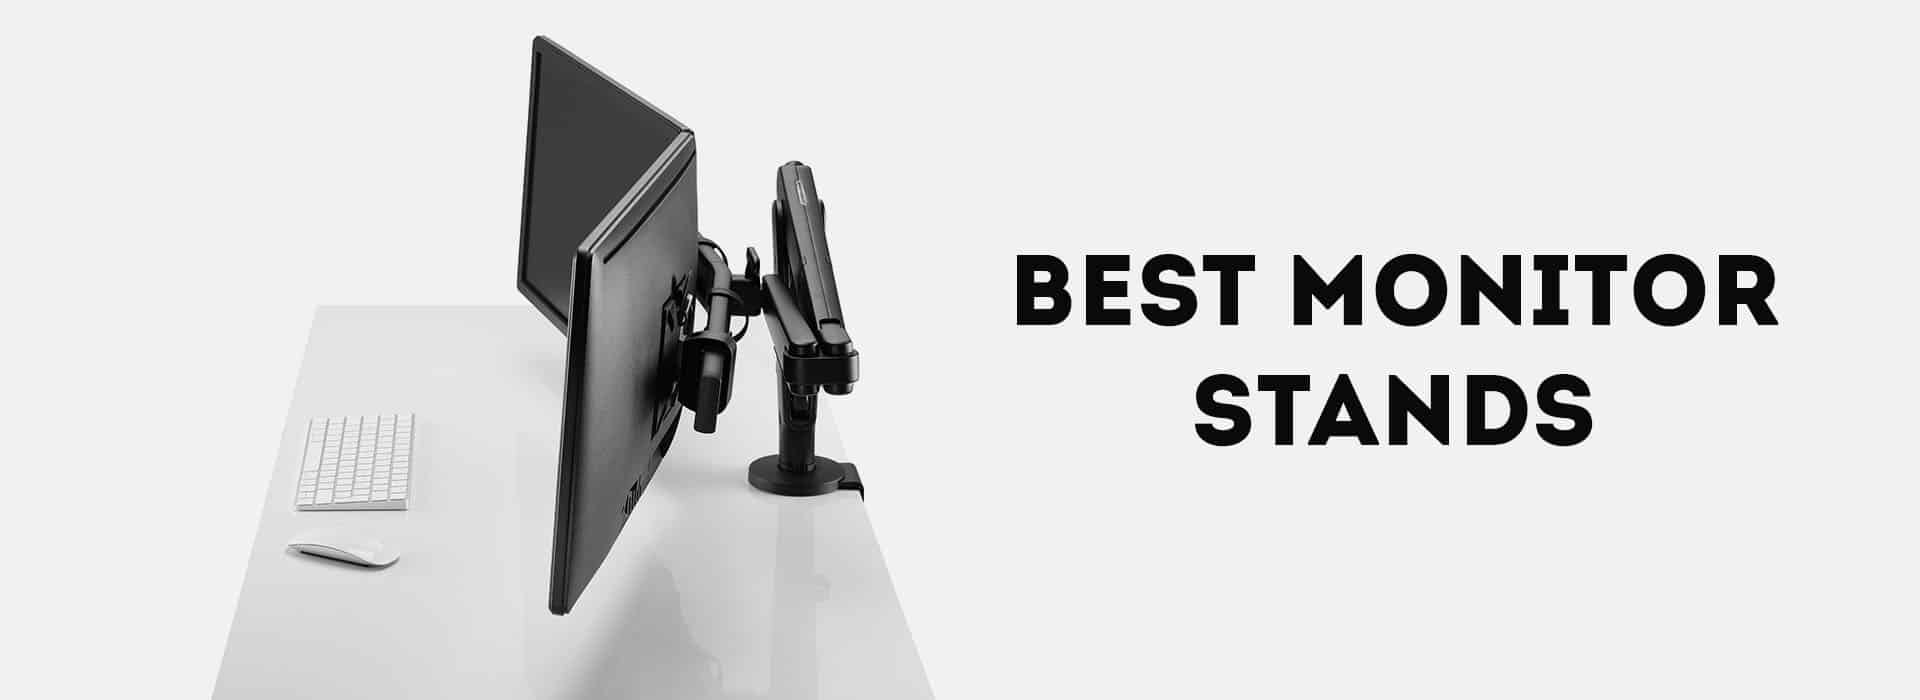 Best Monitor Stand 2018 – The Complete Buying Guide